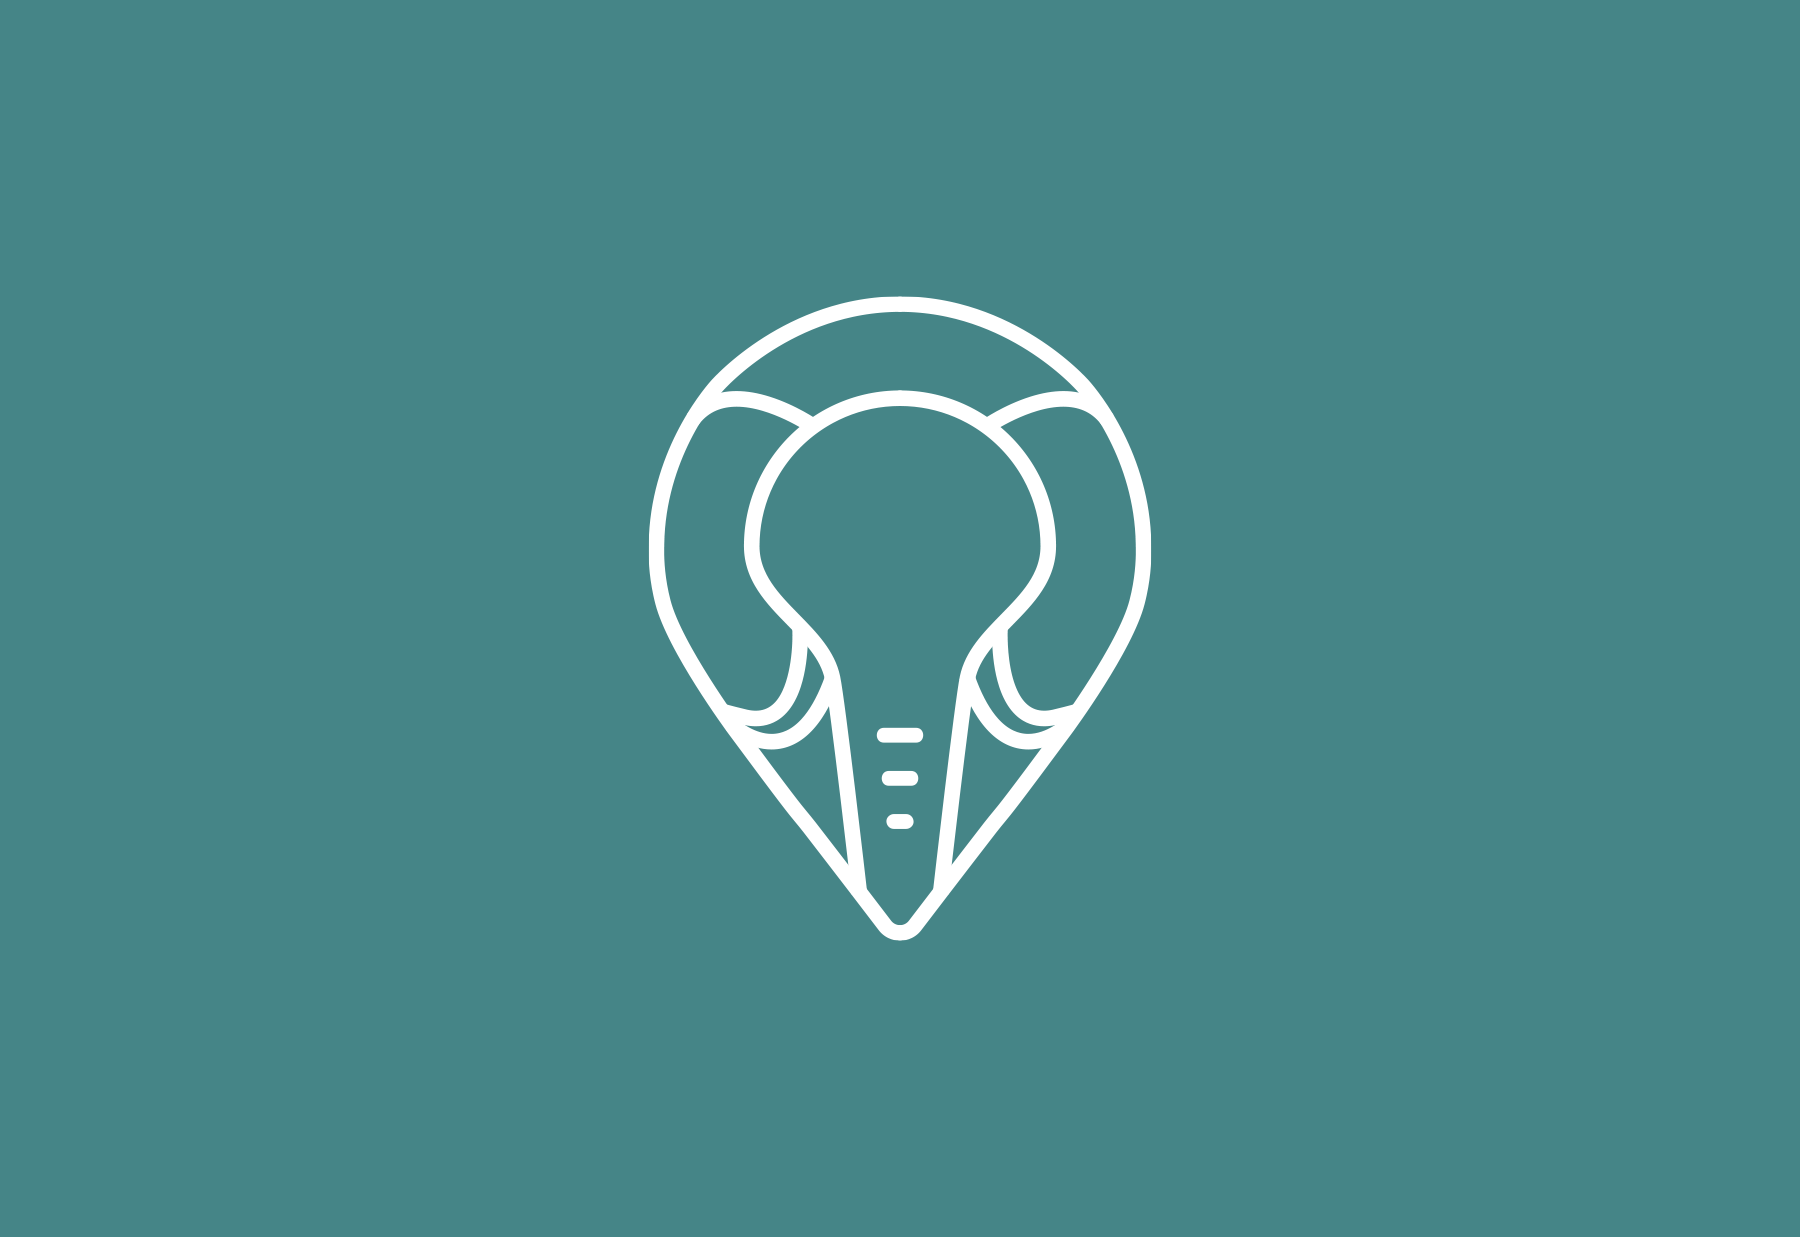 Logo icon for travel company, Dream to Africa